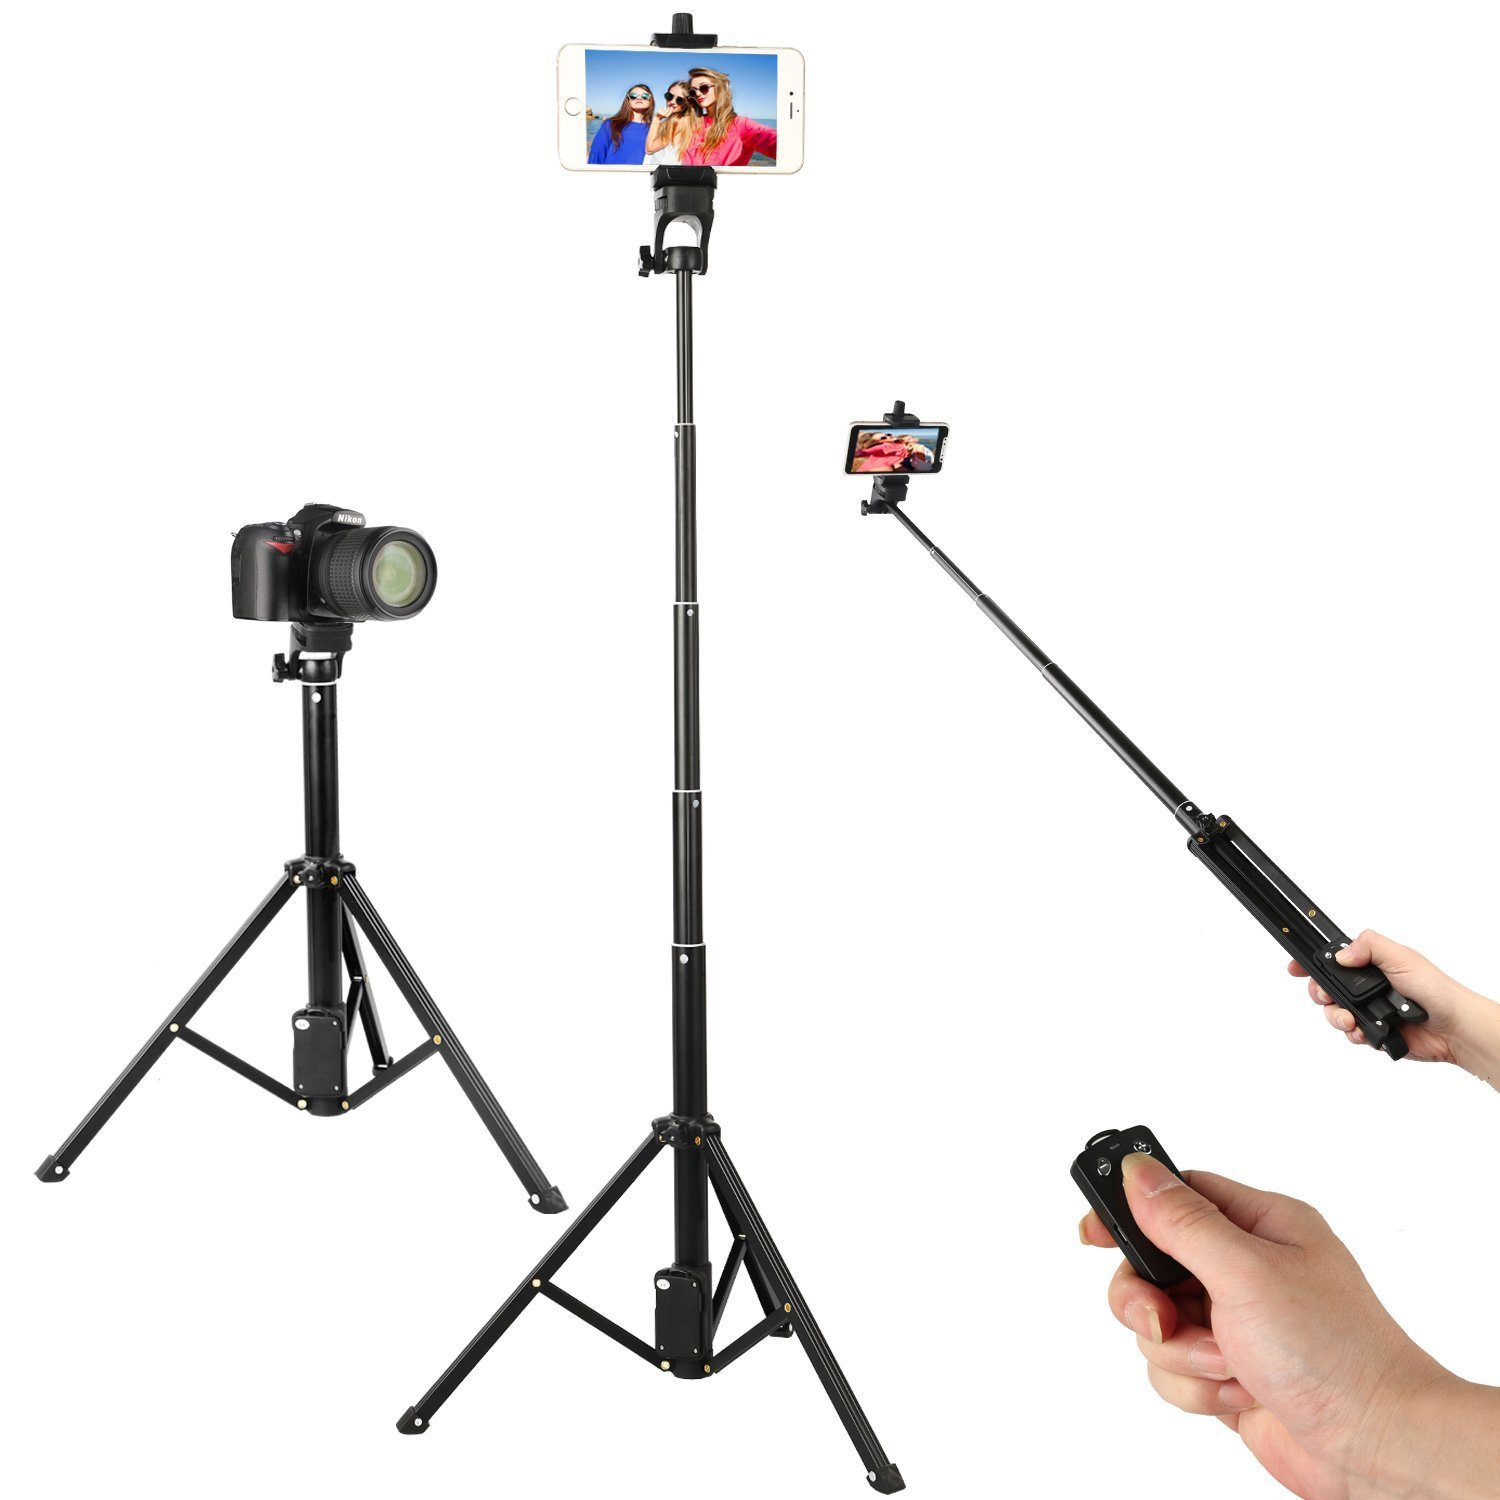 Wireless Remote Selfie Stick Tripod, 54 Inch Adjustable Phone Tripod, Extendable Camera Tripod for Cellphone and Gopro Camera iPhone 8/8 Plus/X/7/7 Plus/Android/Galaxy/Google